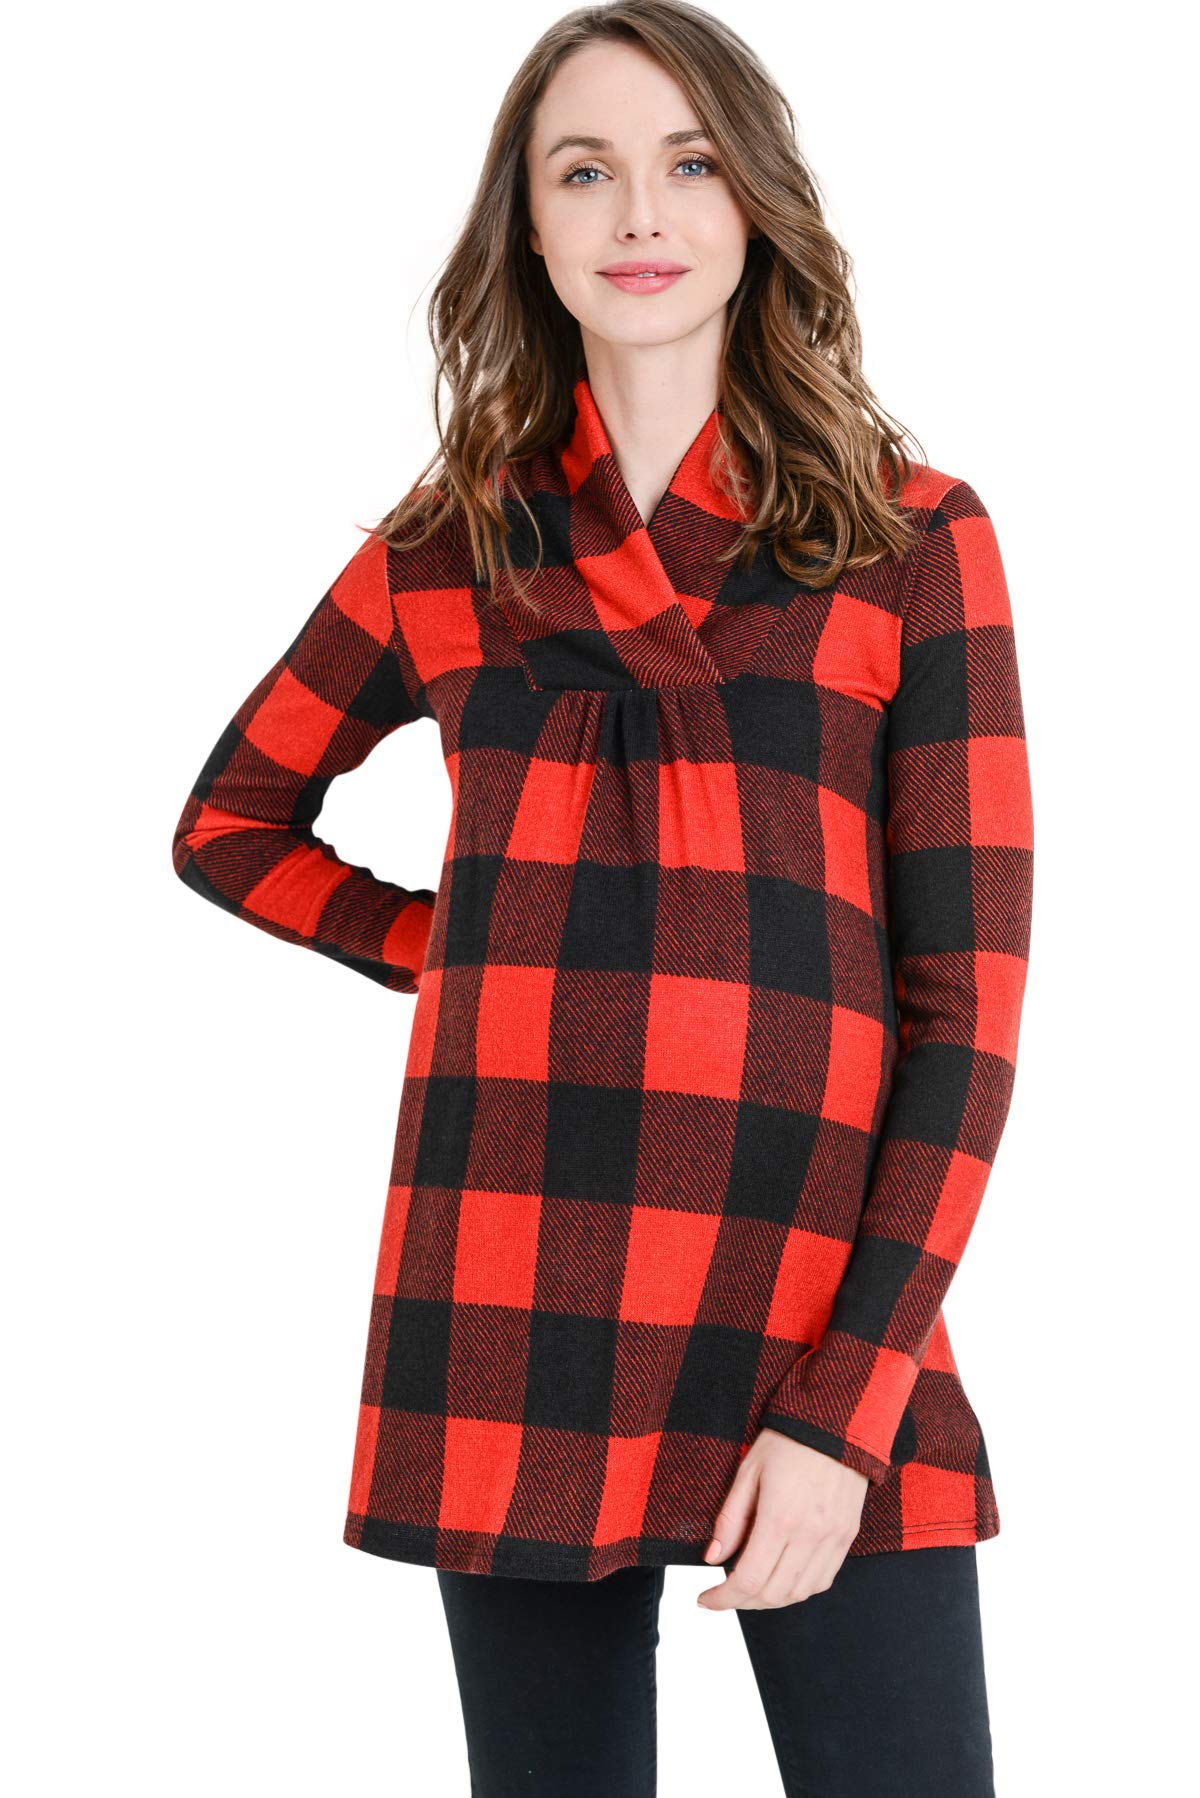 Hello MIZ Women's Sweater Knit Maternity Long Sleeve Tunic Top (Red/Black Plaid, L)